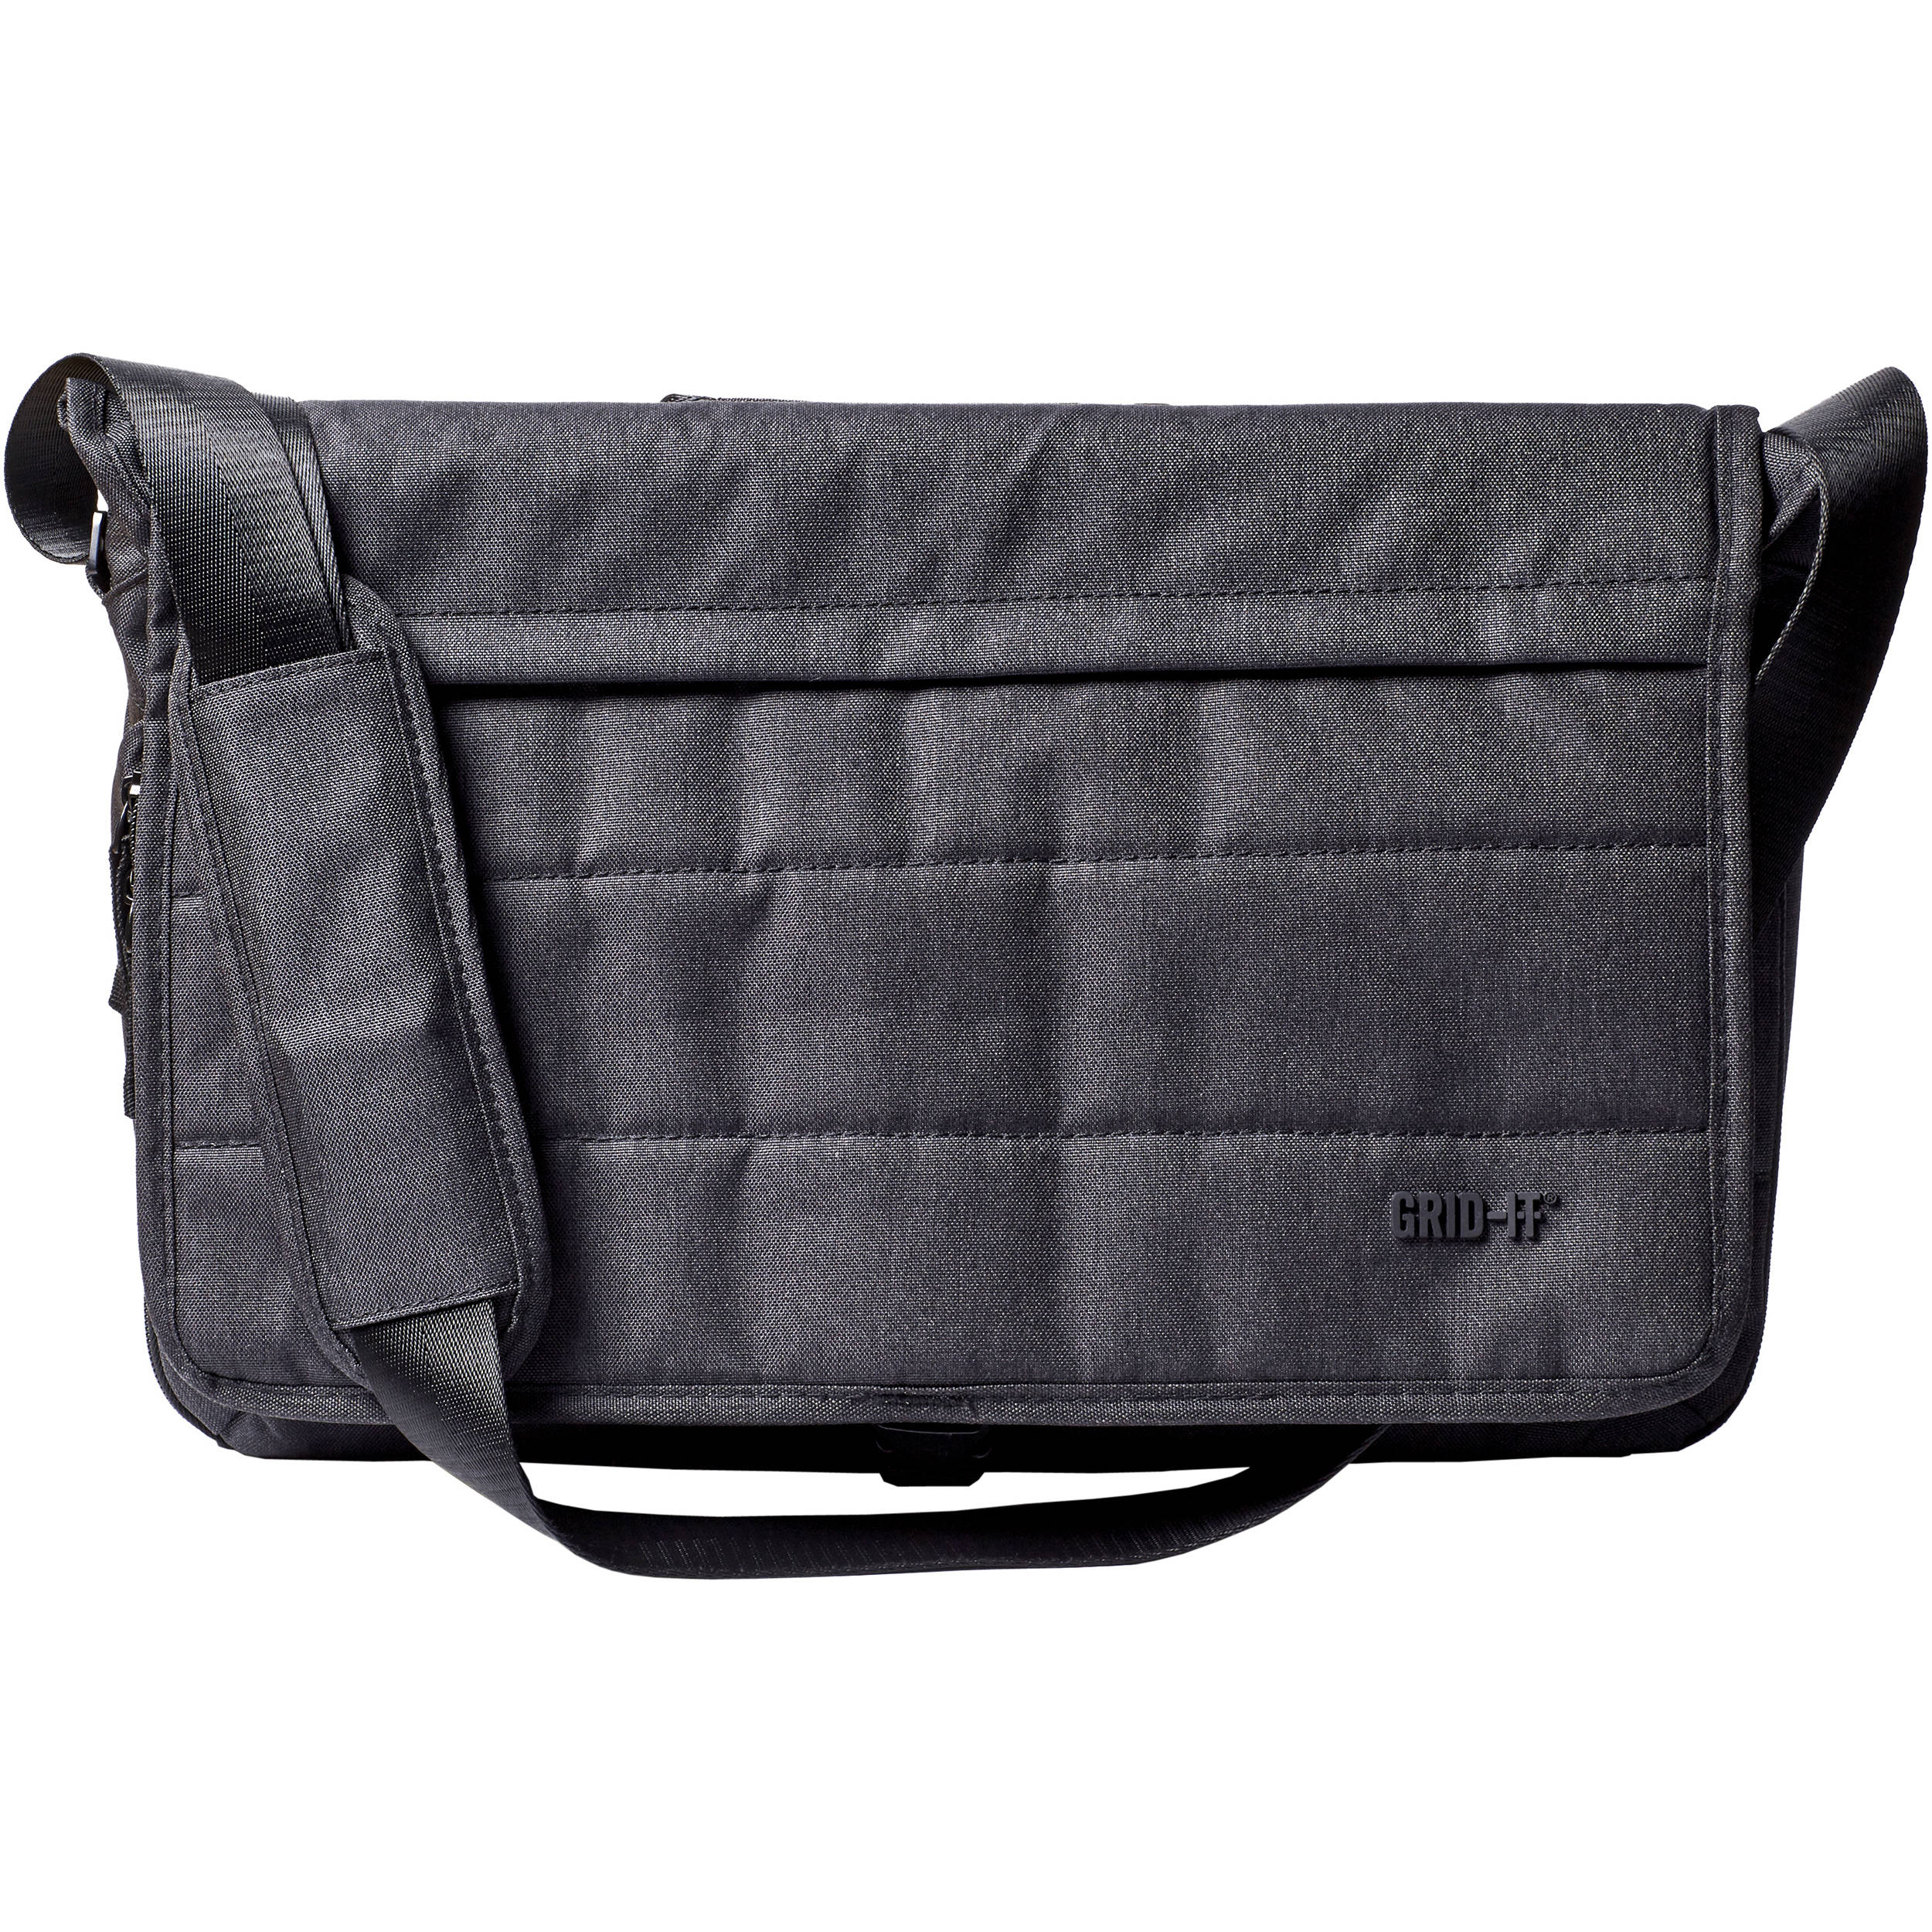 Tech Messenger Bag For Laptop Up To 16 Charcoal